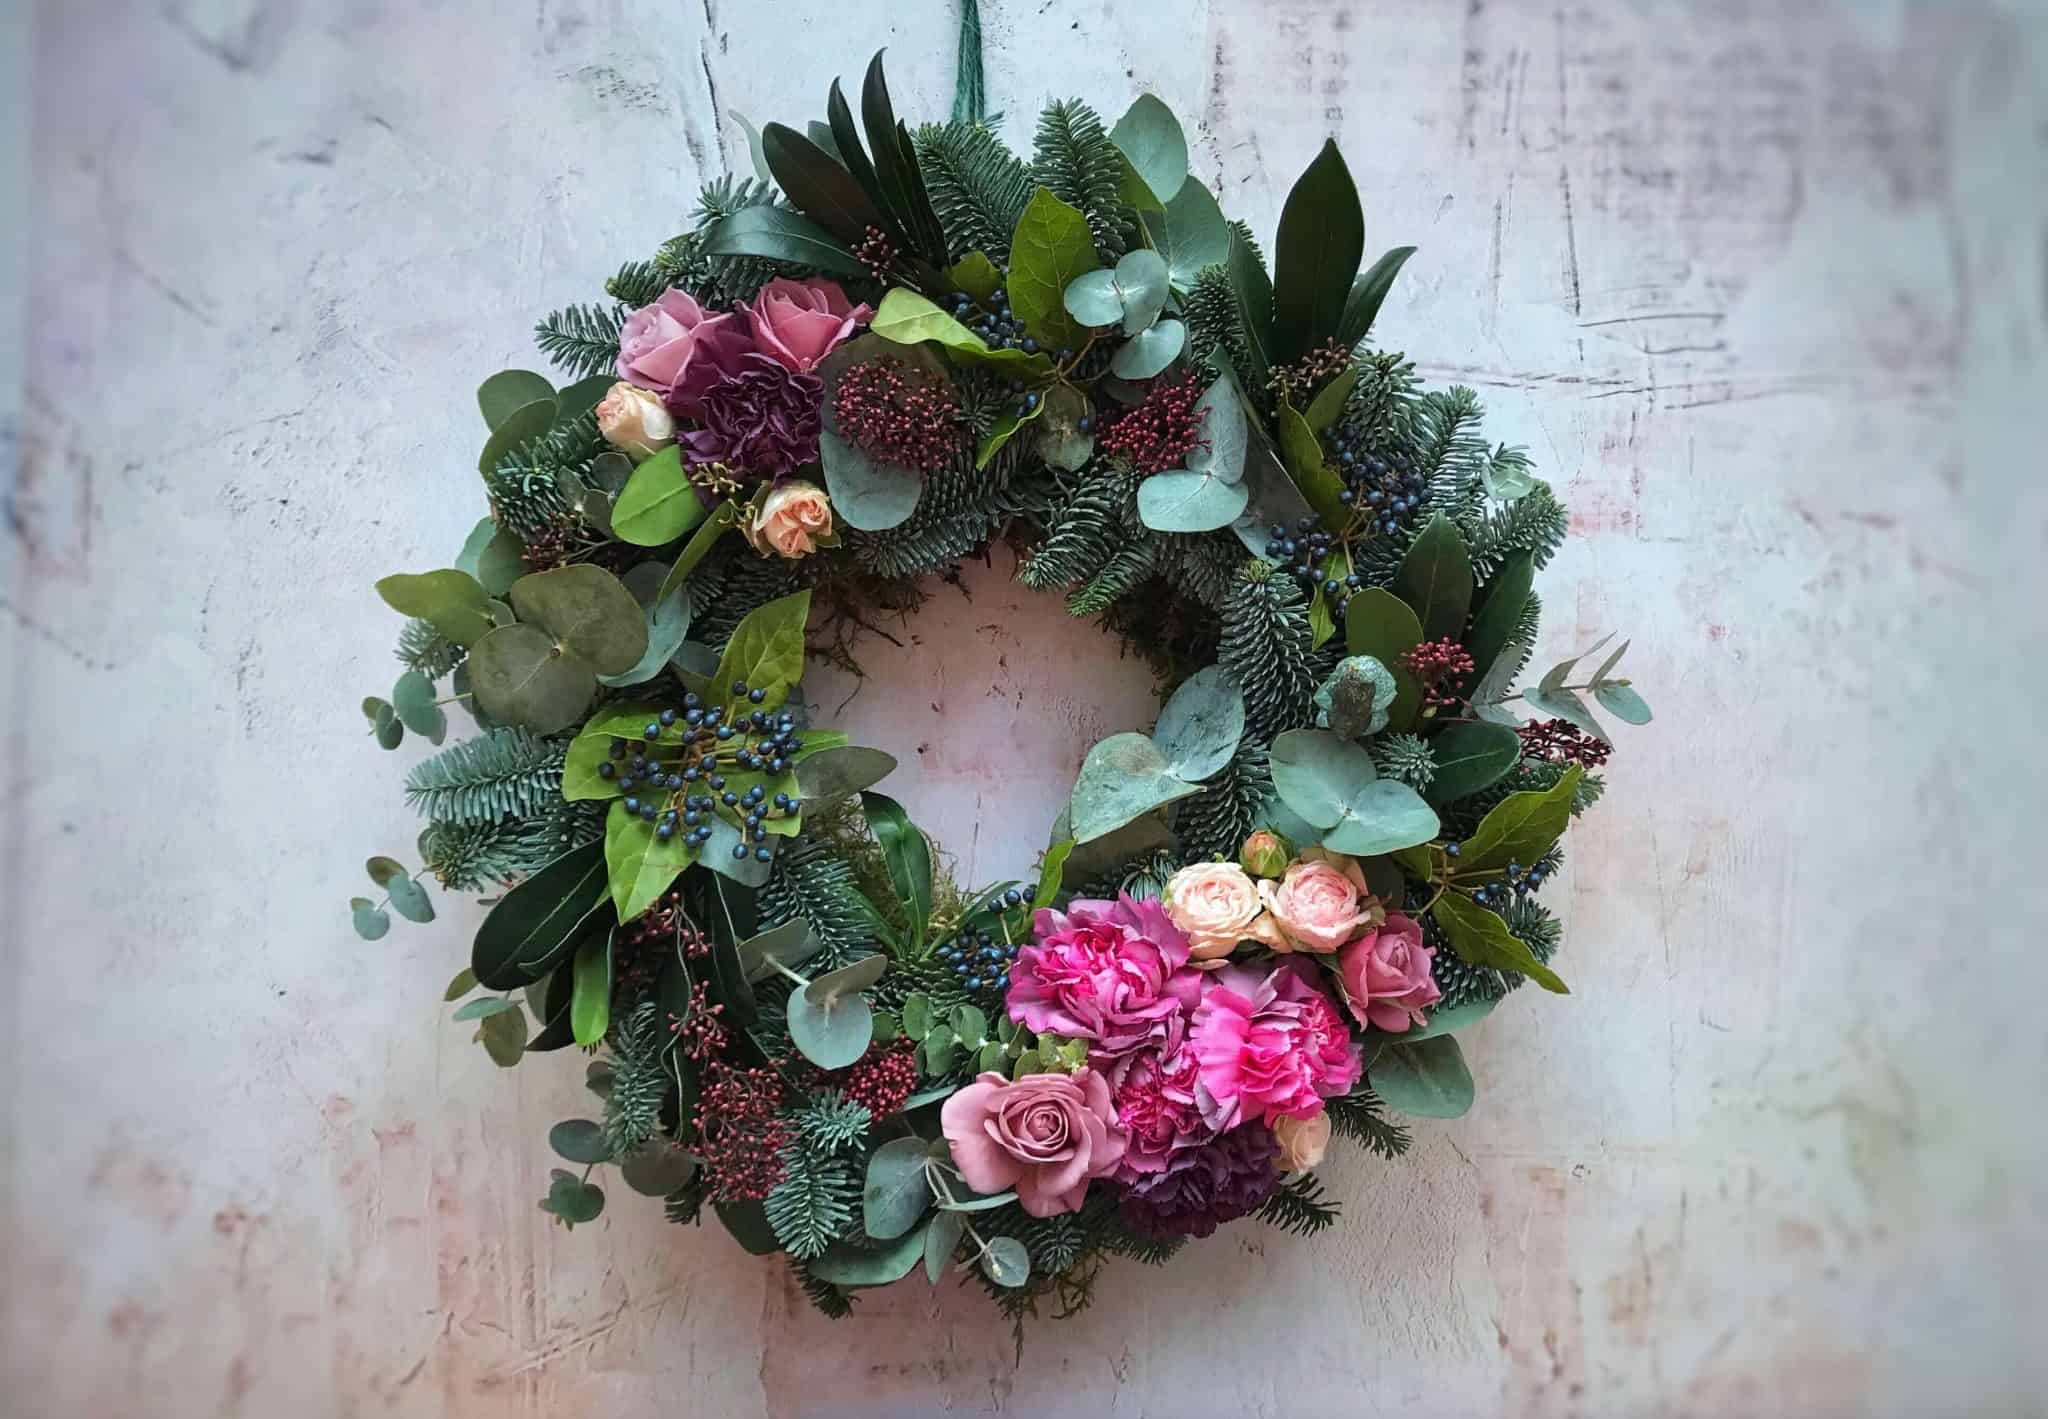 Making a Contemporary Christmas Wreath